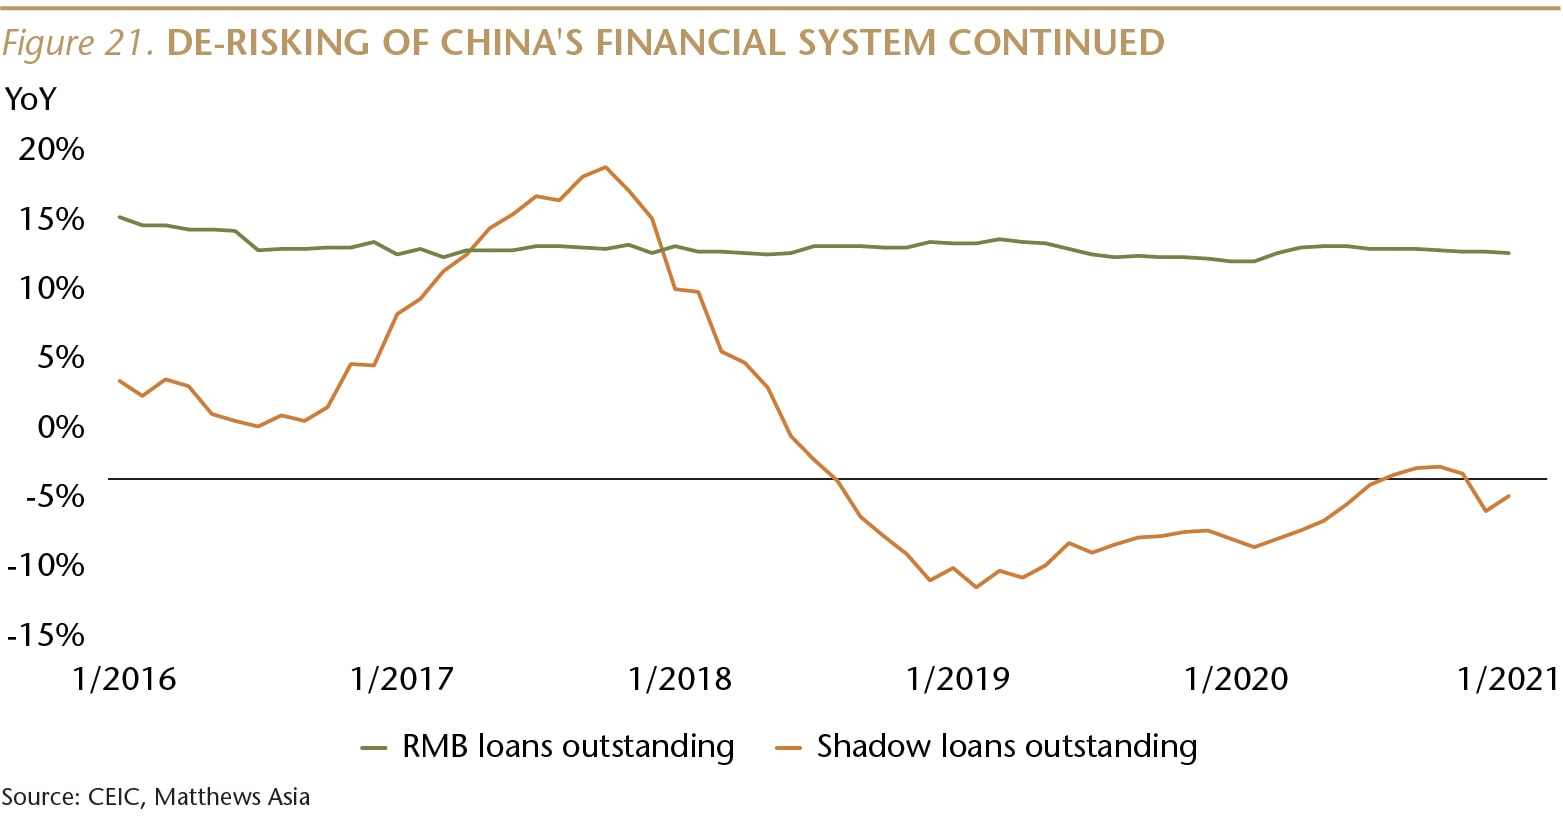 SI073_Figure 21_De-risking China financial system_WEB-01-min.jpg